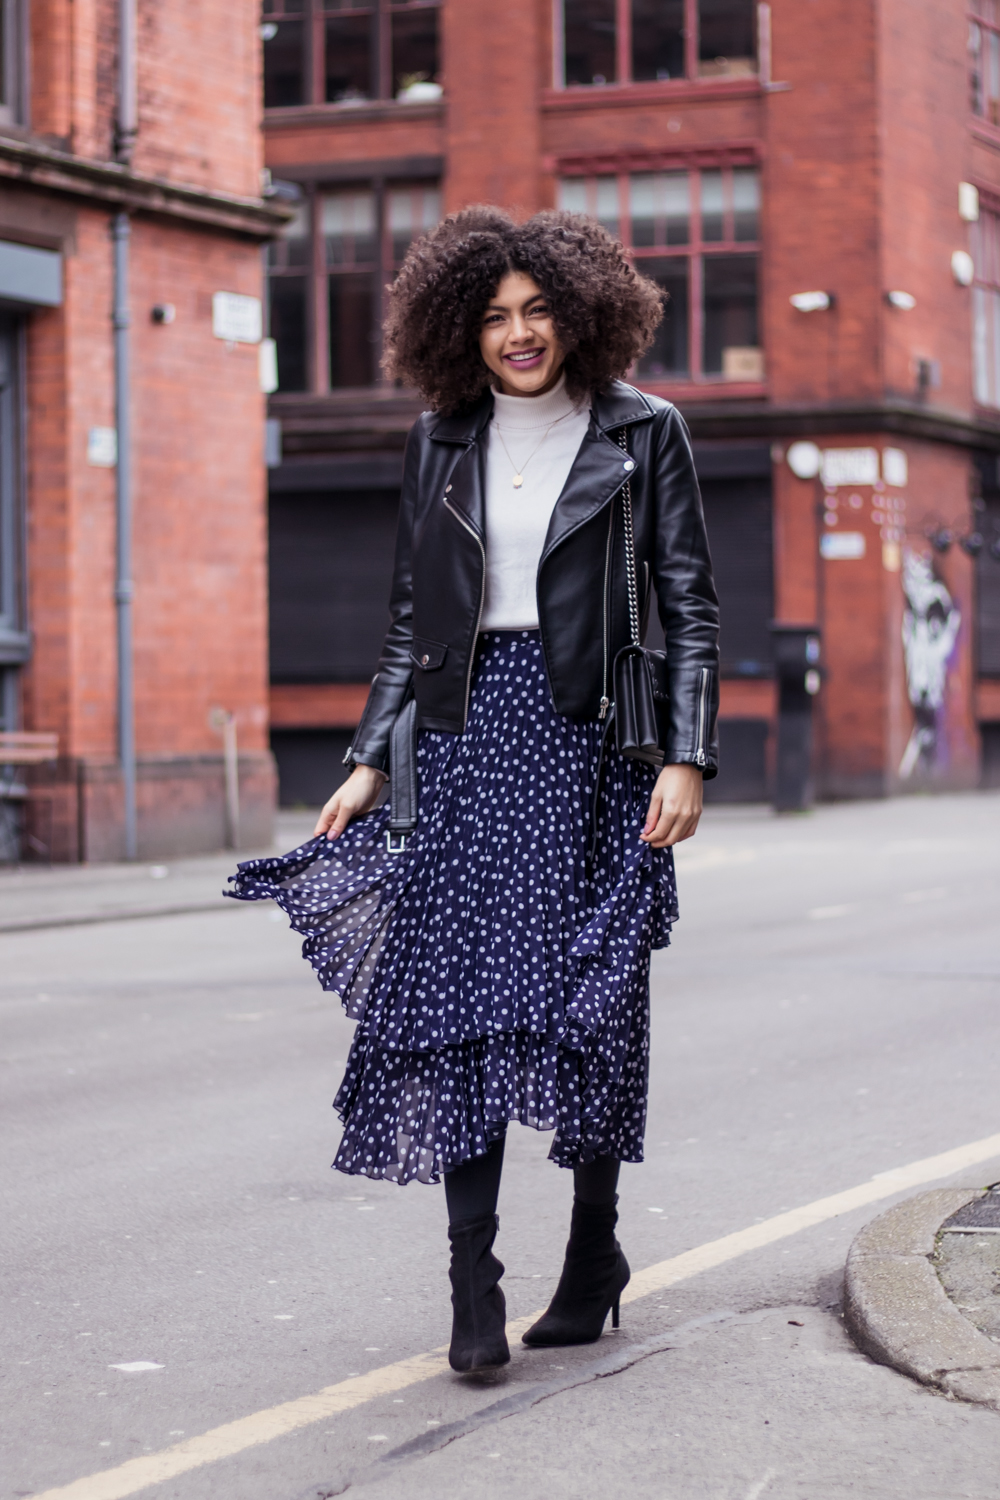 Finery Baltic Double Layered Pleated Polka Dot Skirt and Biker Jacket Outfit